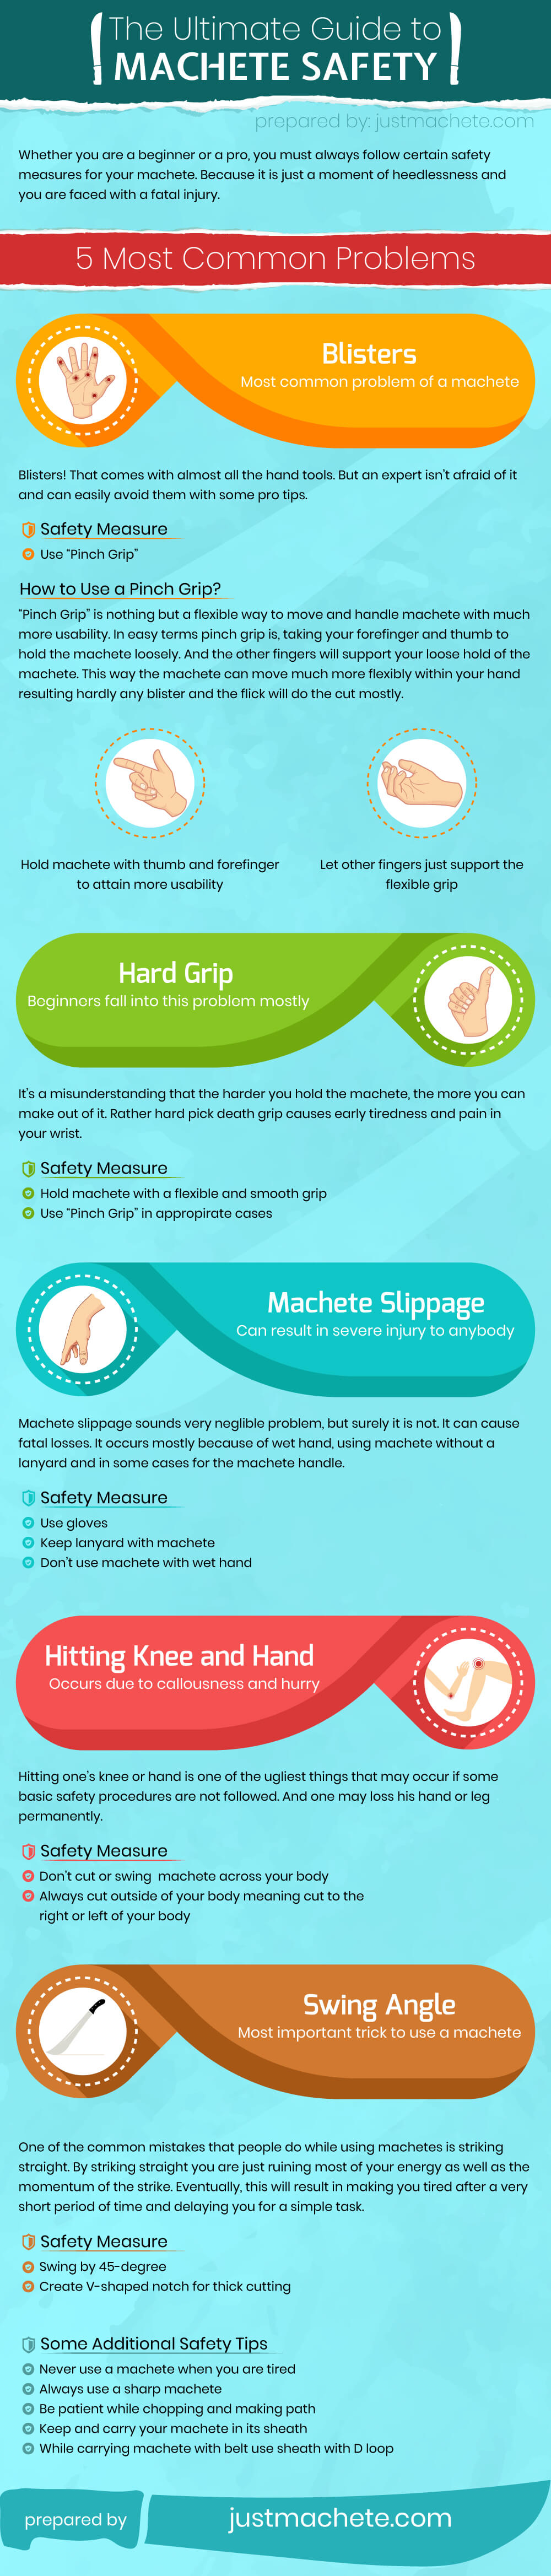 How-to-use-a-machete-safely-infogrpahic-plaza